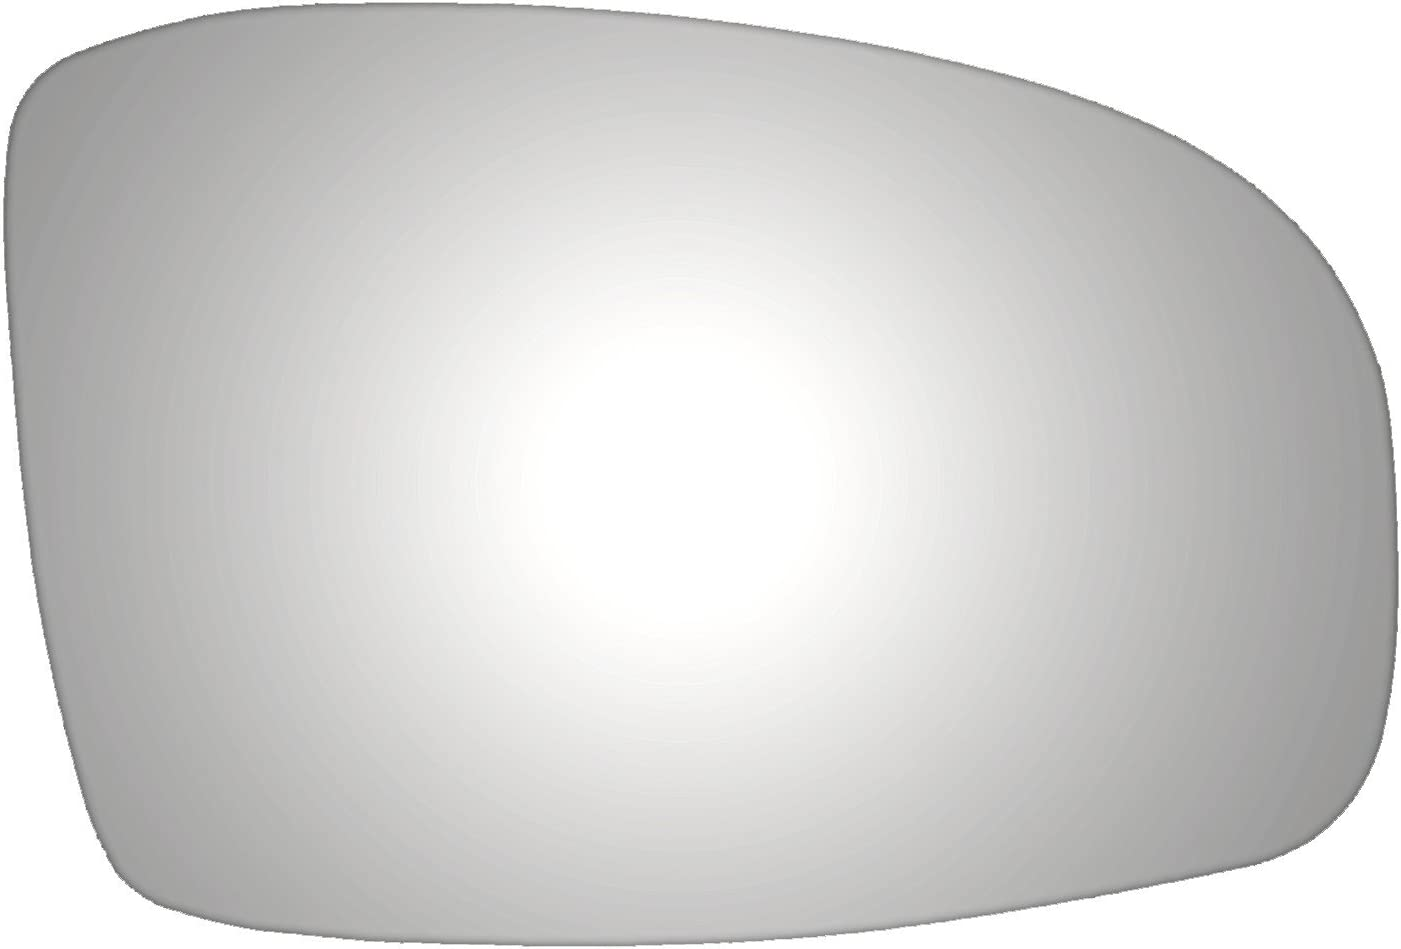 Mirrex 83577 Fits Passenger Right Side Replacement for Toyota Avalon 2011 2012 Mirror Glass